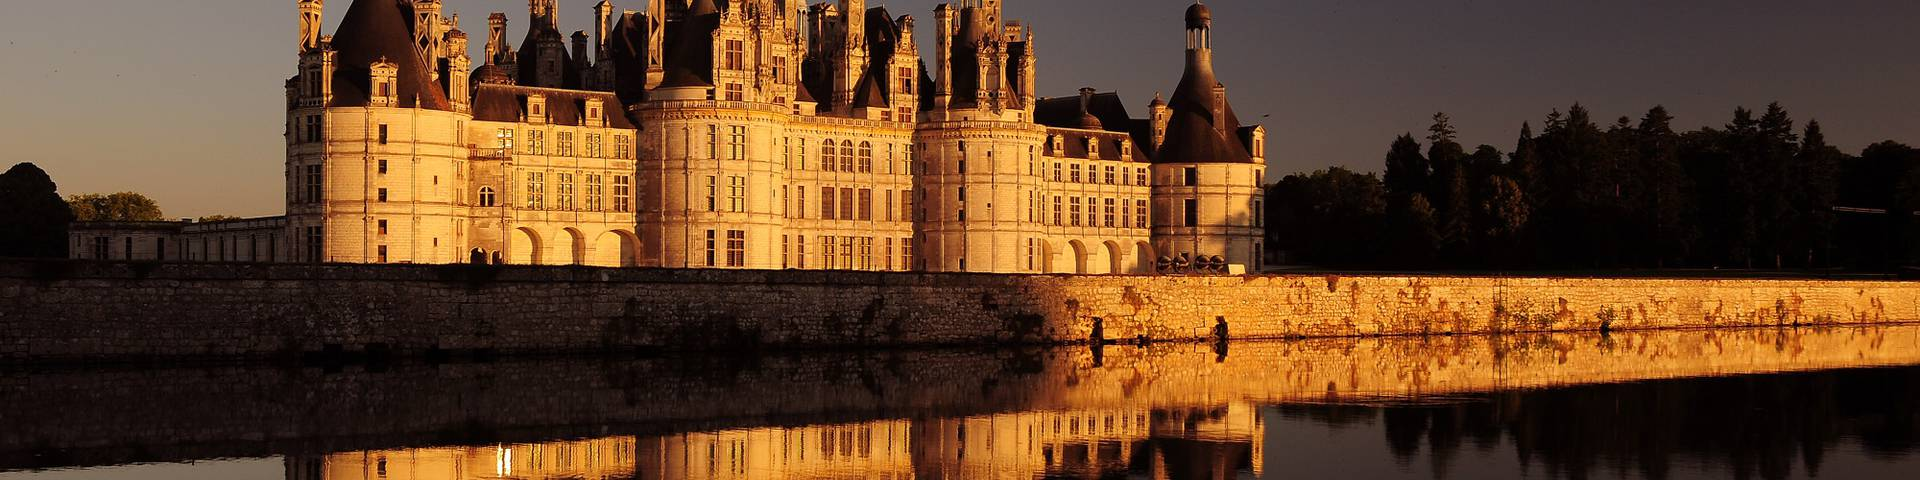 The castle of Chambord. © Léonard de Serres